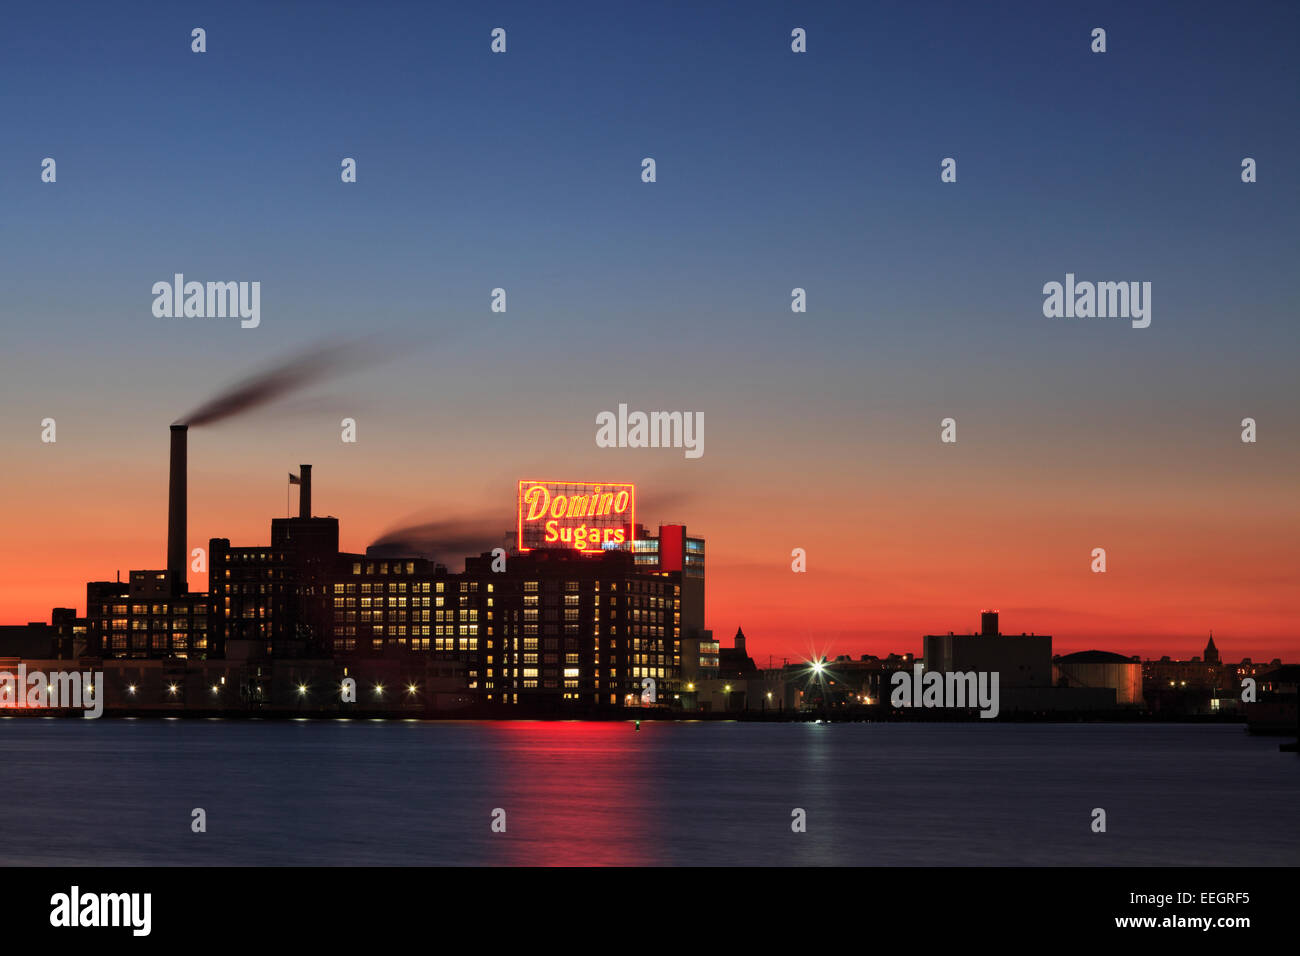 The iconic Domino Sugars sign at the Inner Harbor in Baltimore, Maryland - Stock Image